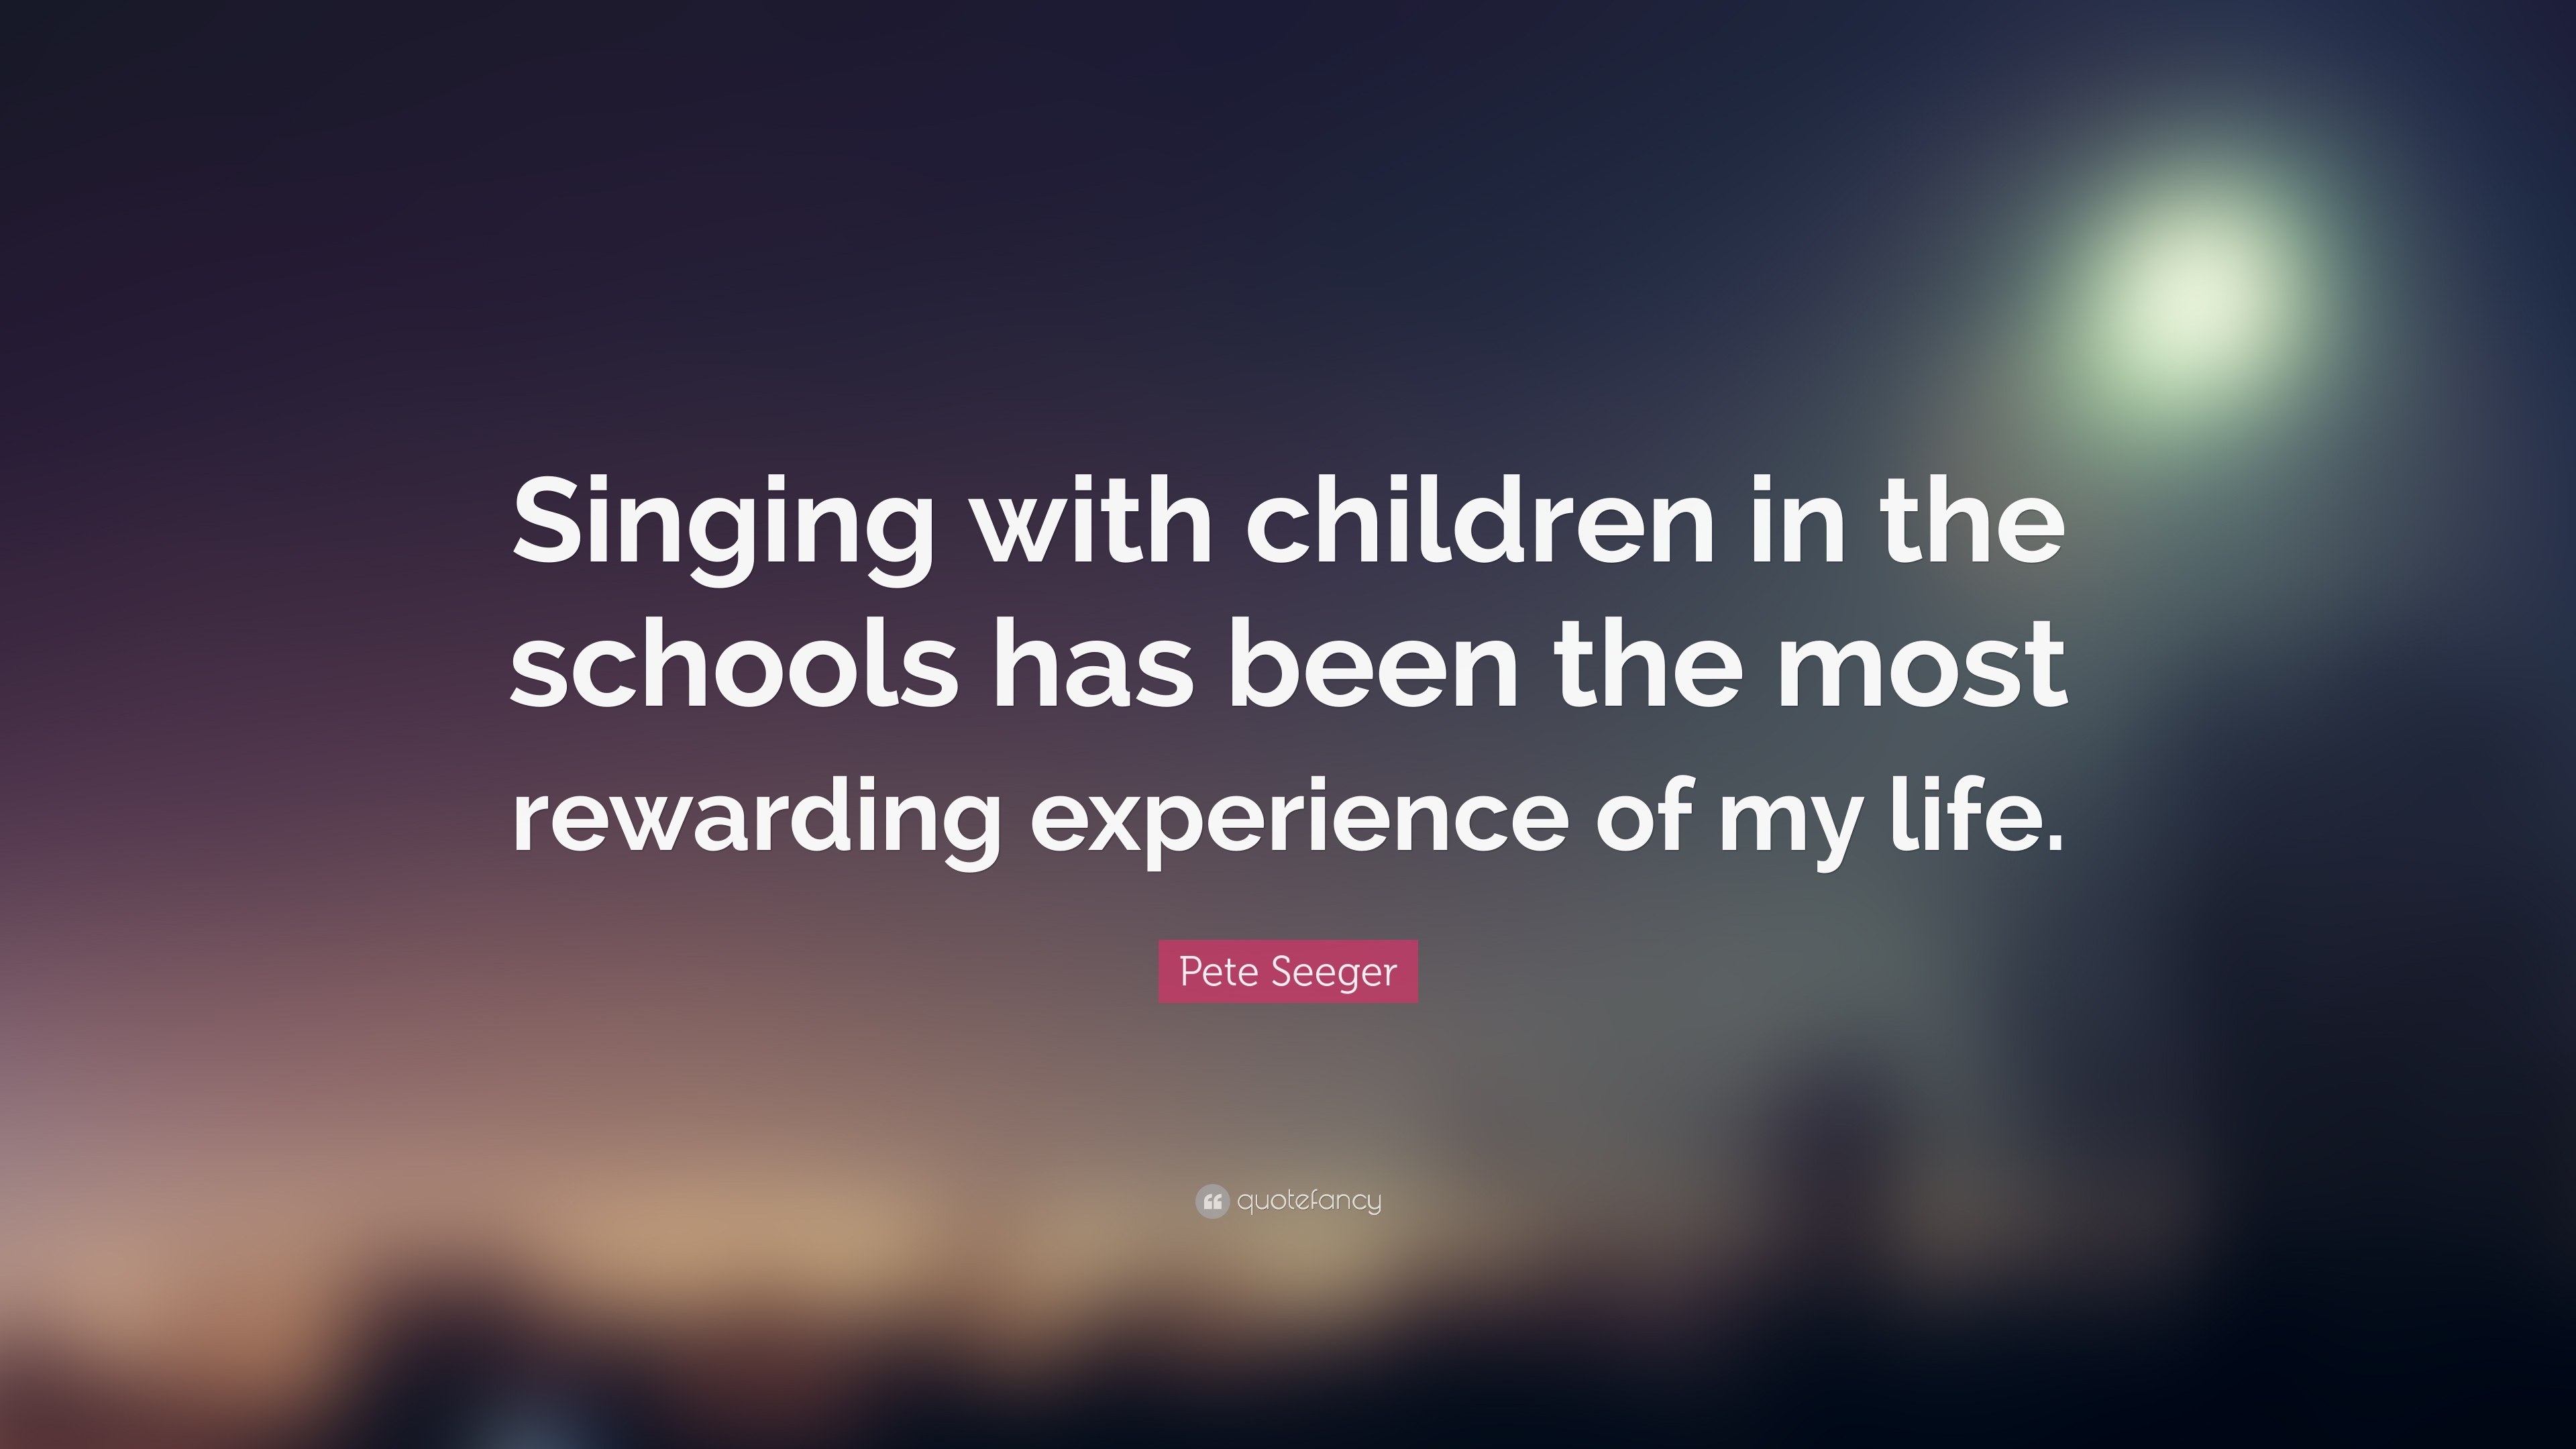 pete seeger quote singing with children in the schools has been the most rewarding